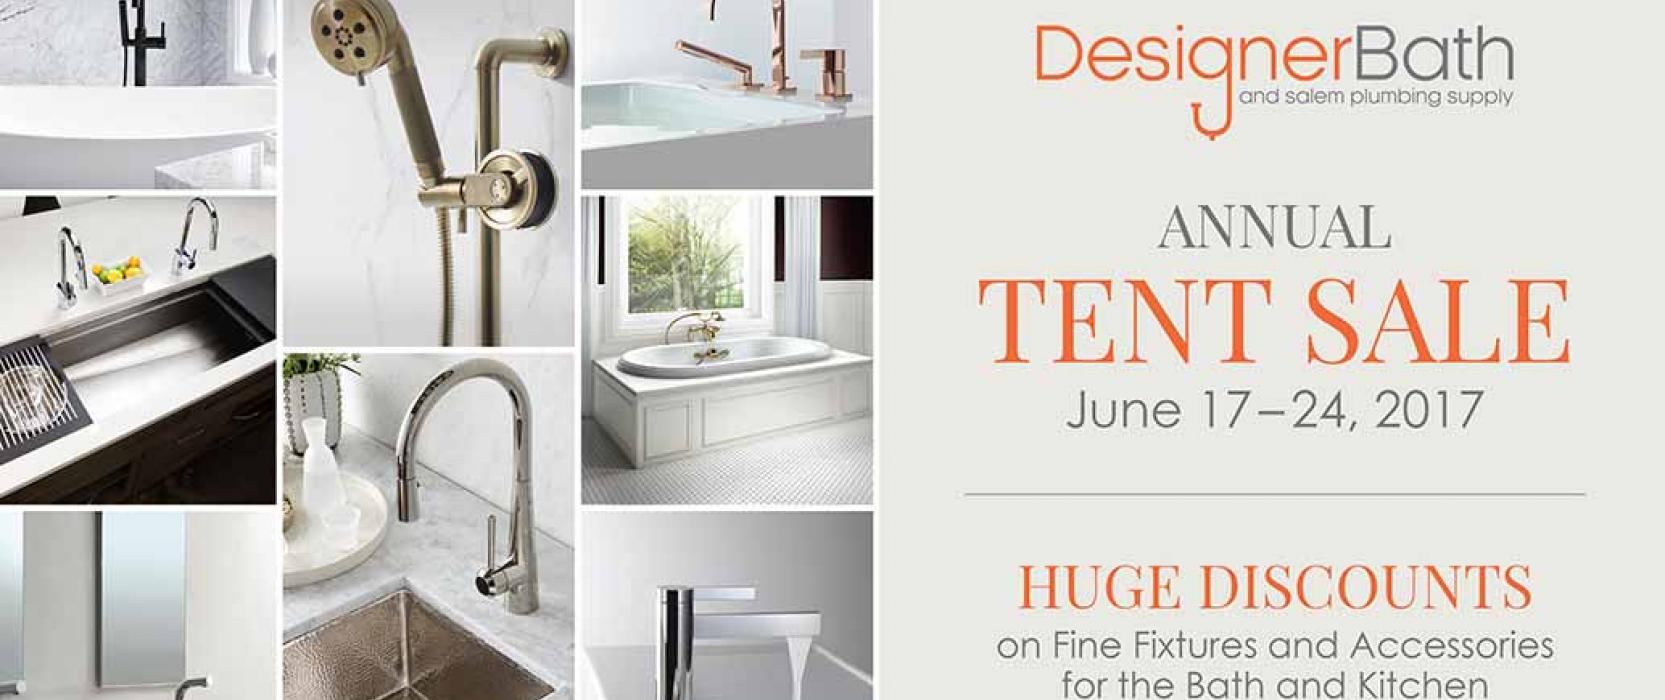 huge discounts on fine fixtures and accessories for the bath and kitchen